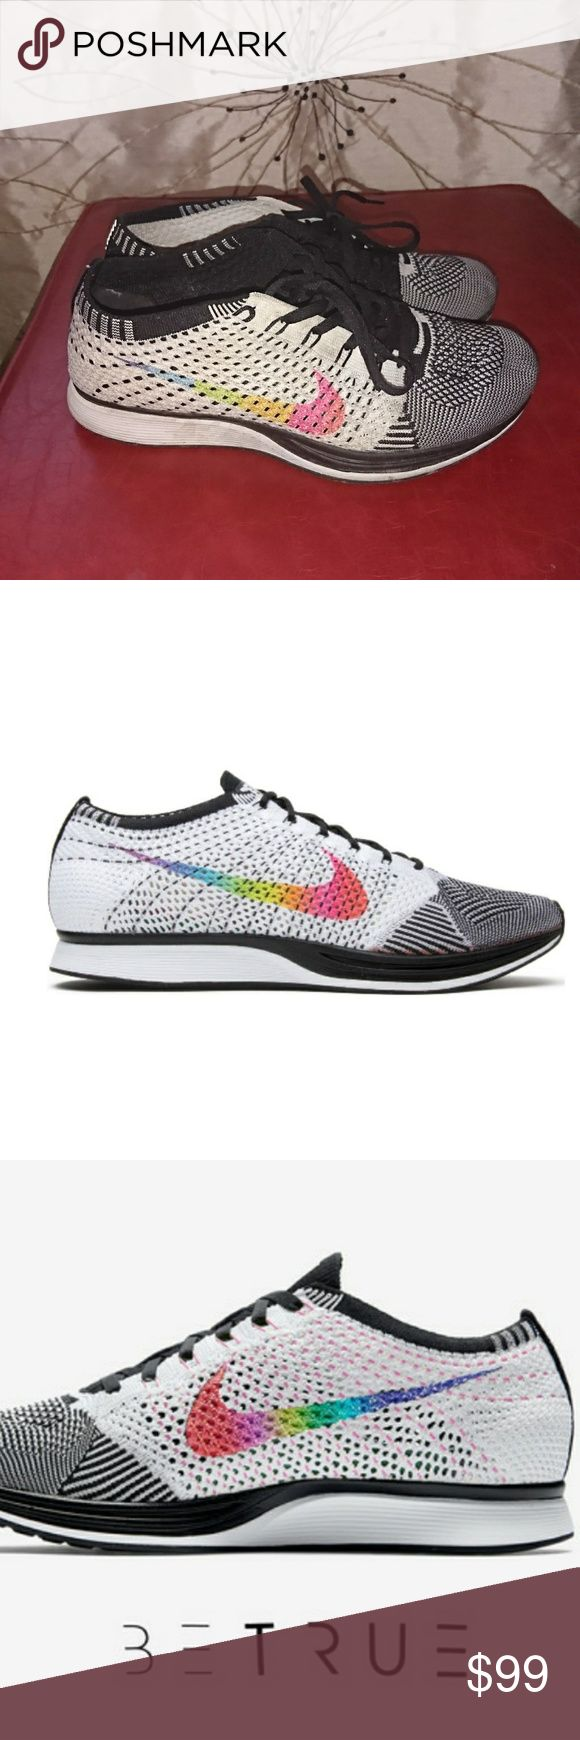 Euclid nike fly knit be true Flyknit Racer 'Be True' racer good used Condition will be cleaned before sent to you Size 8 Nike Shoes Sneakers